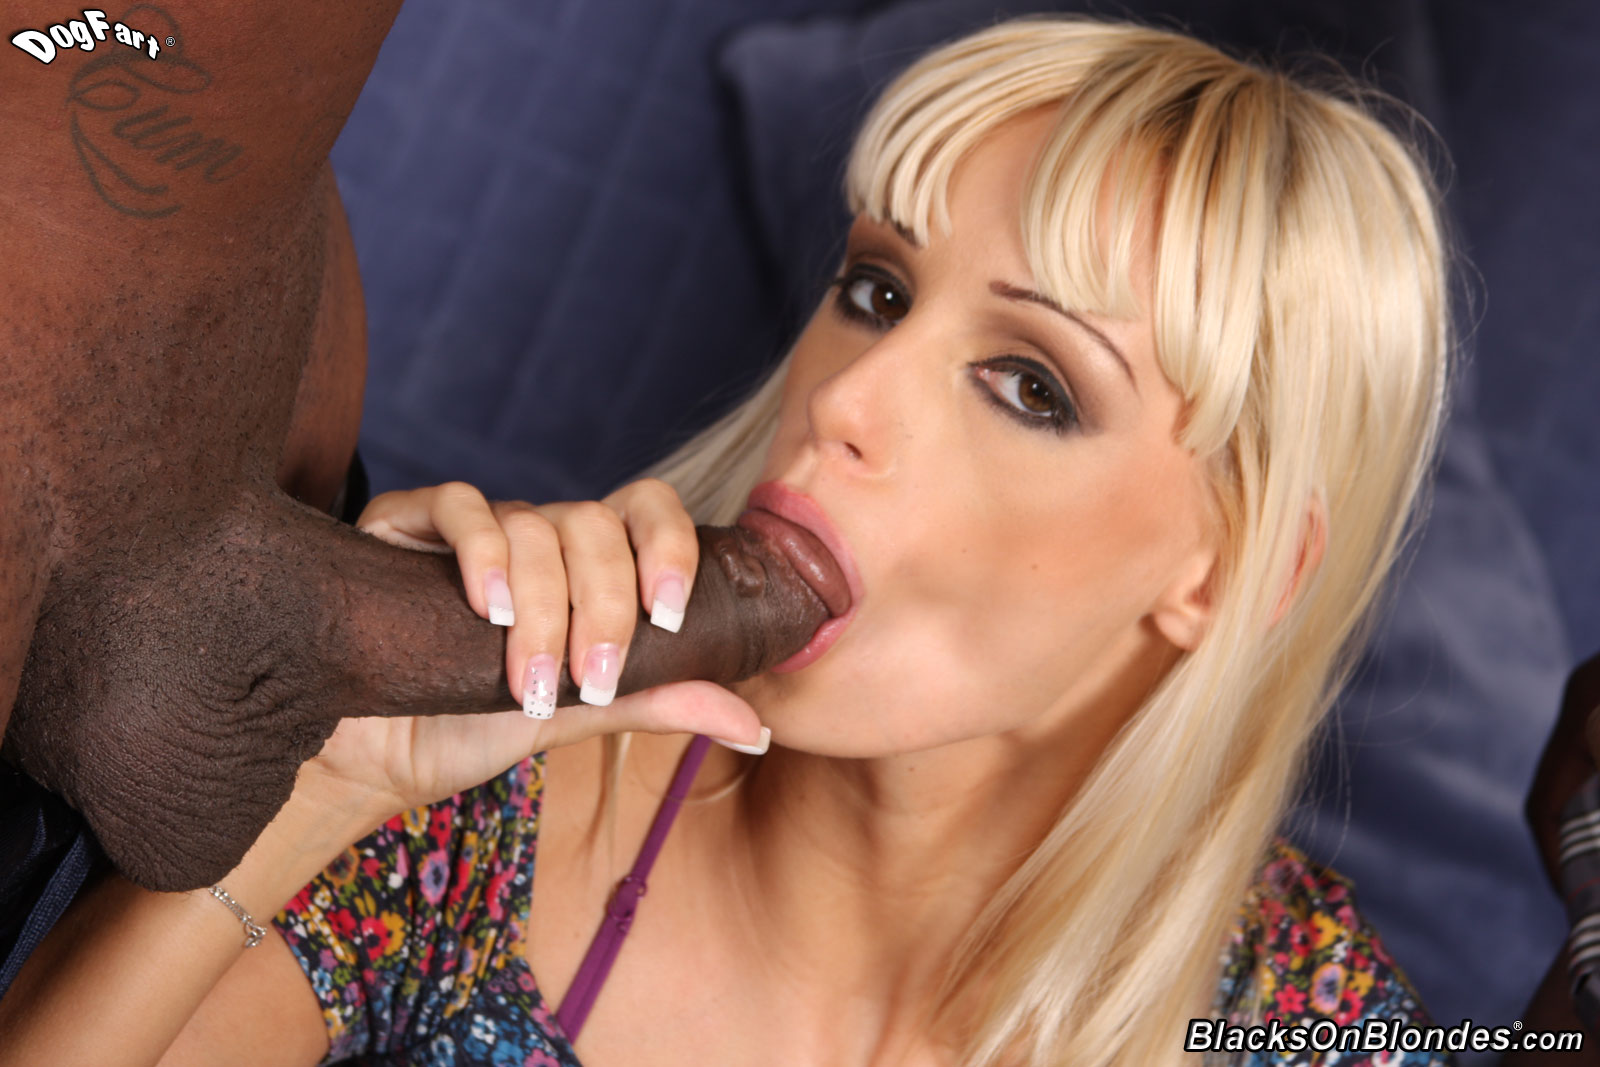 galleries blacksonblondes content erica fontes pic 13